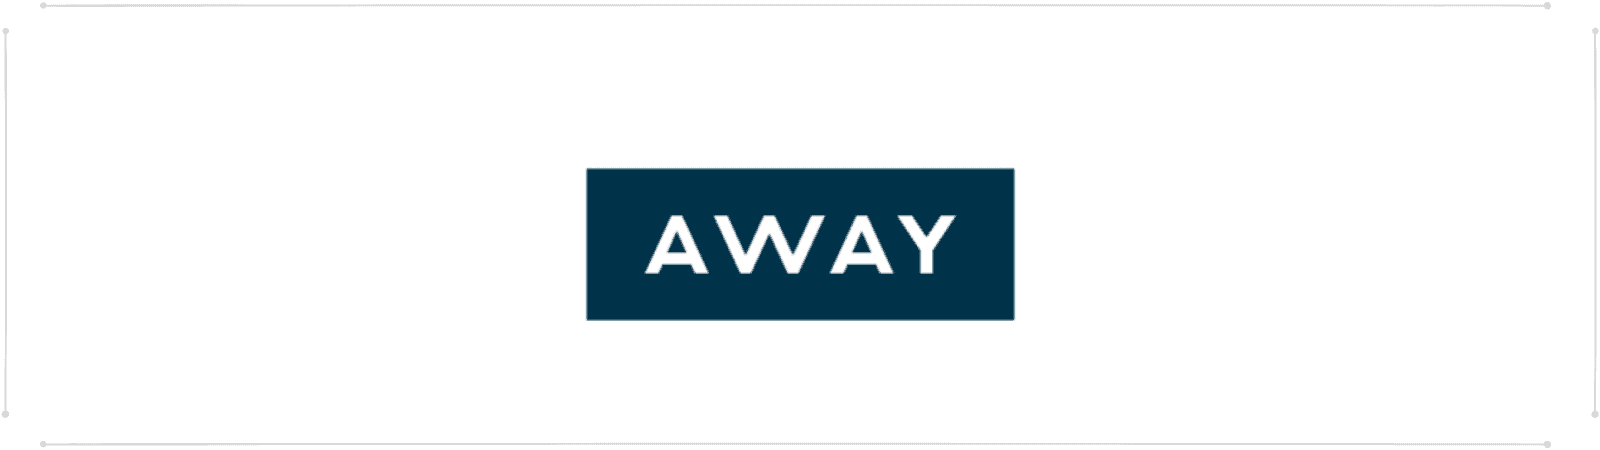 away luggage logo